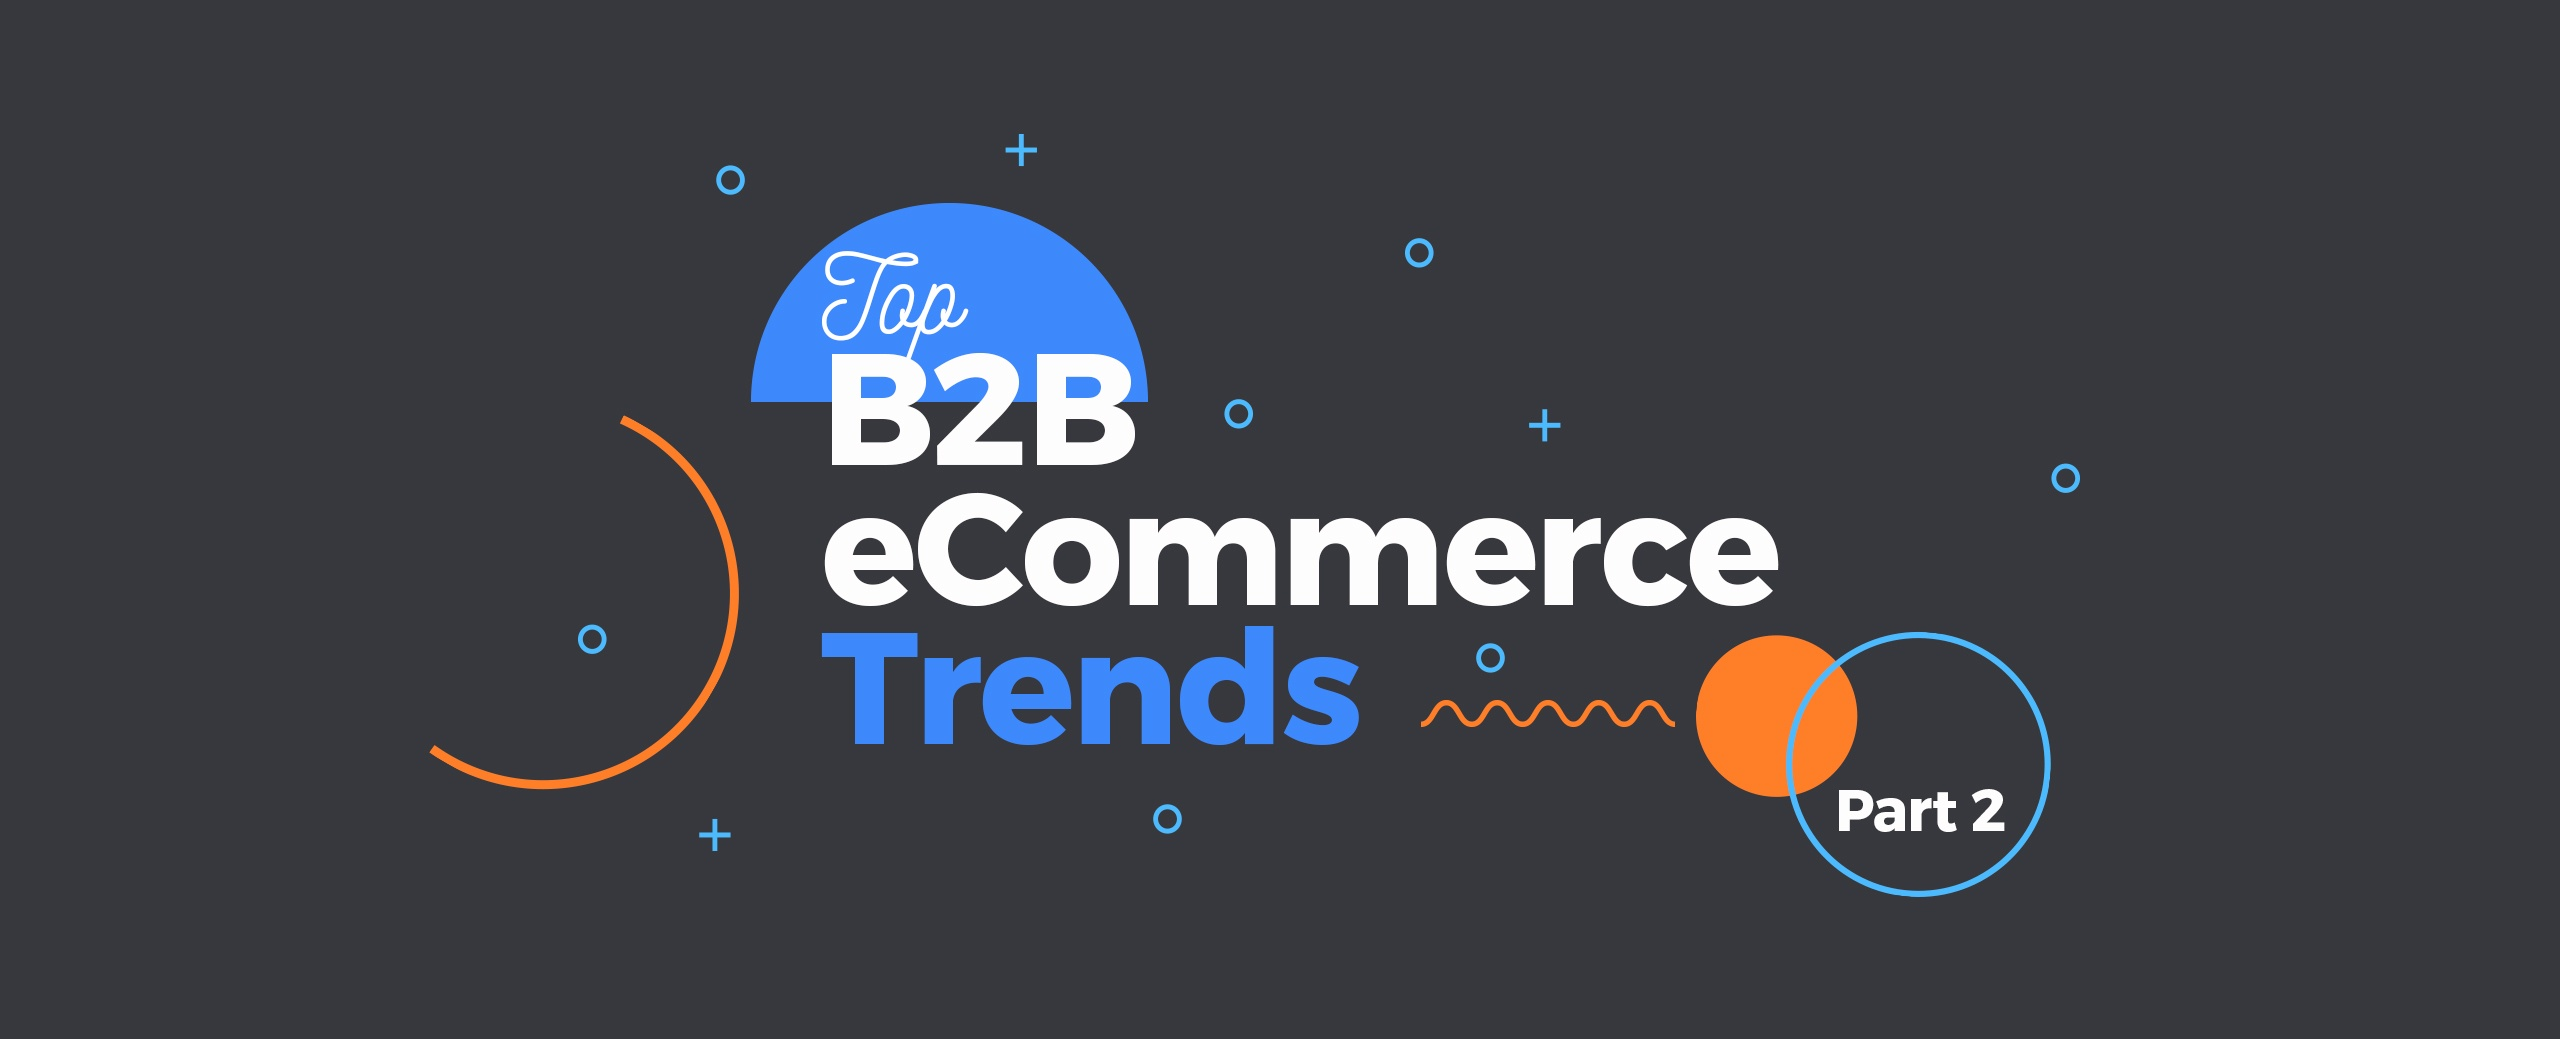 Top-B2B-eCommerce-Trends-You-Need-To-Know-part2